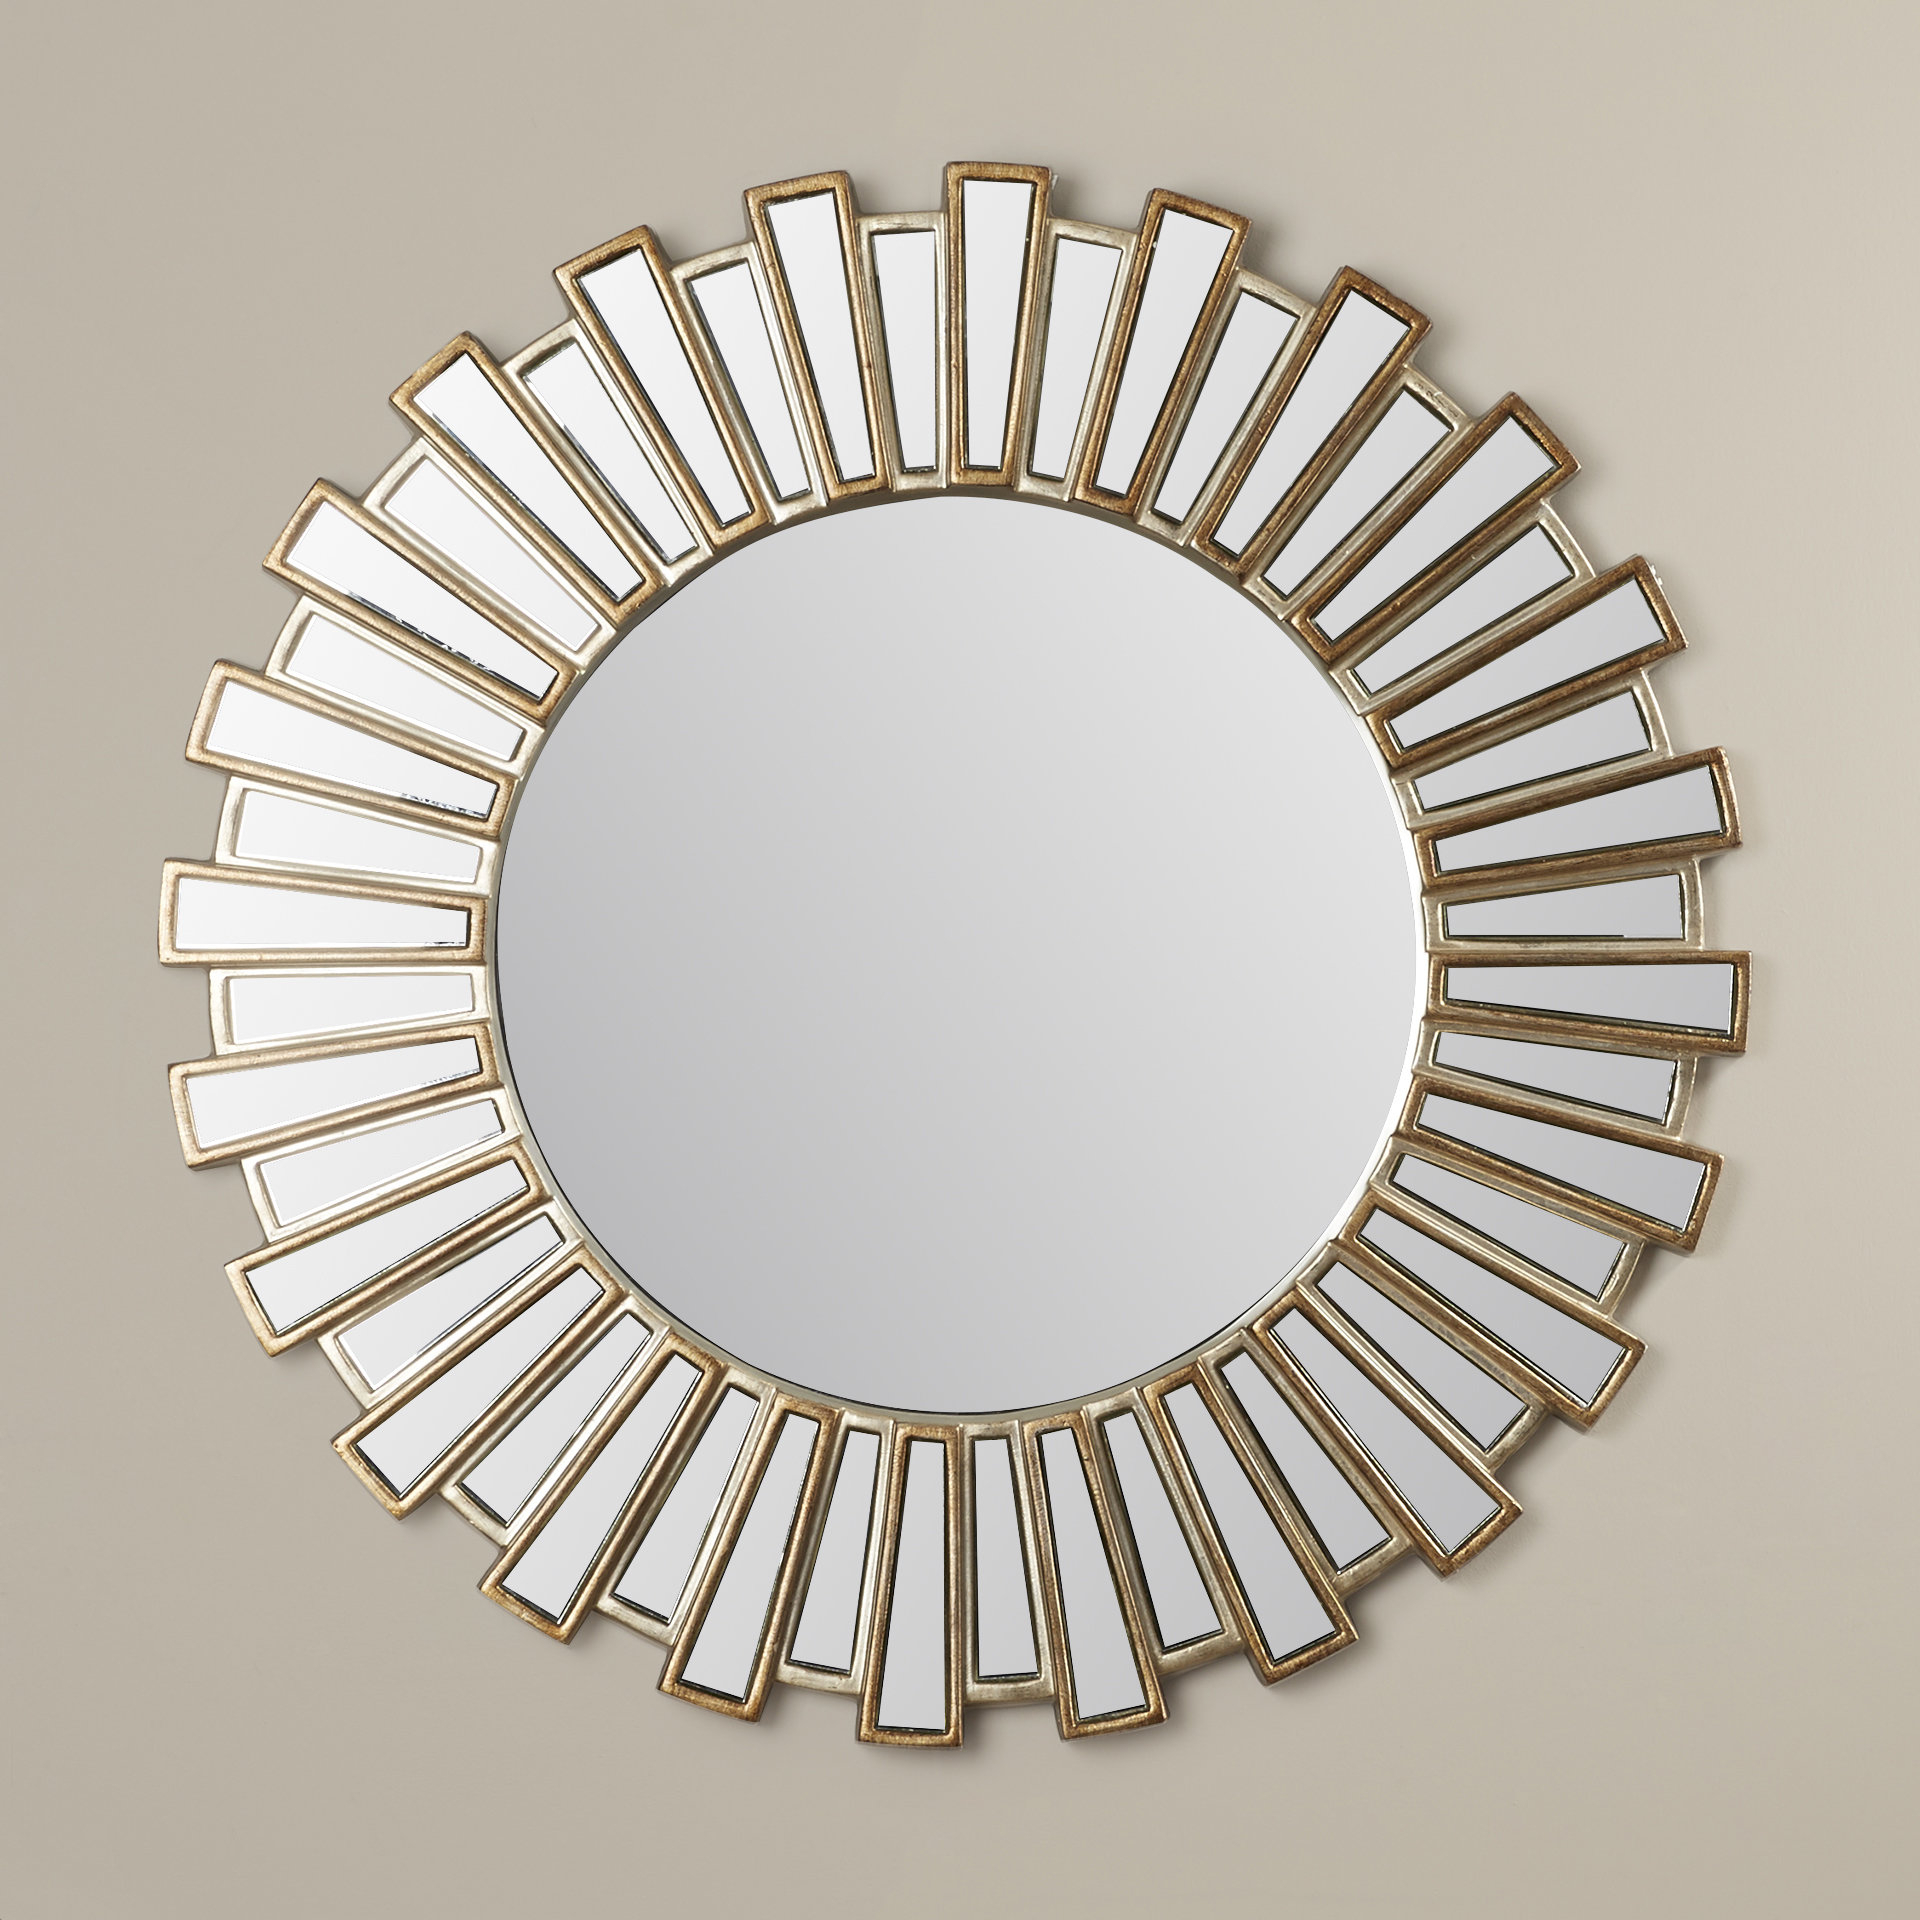 Sunburst Wall Mirrors You'll Love In 2019 | Wayfair For Birksgate Sunburst Accent Mirrors (Image 16 of 20)